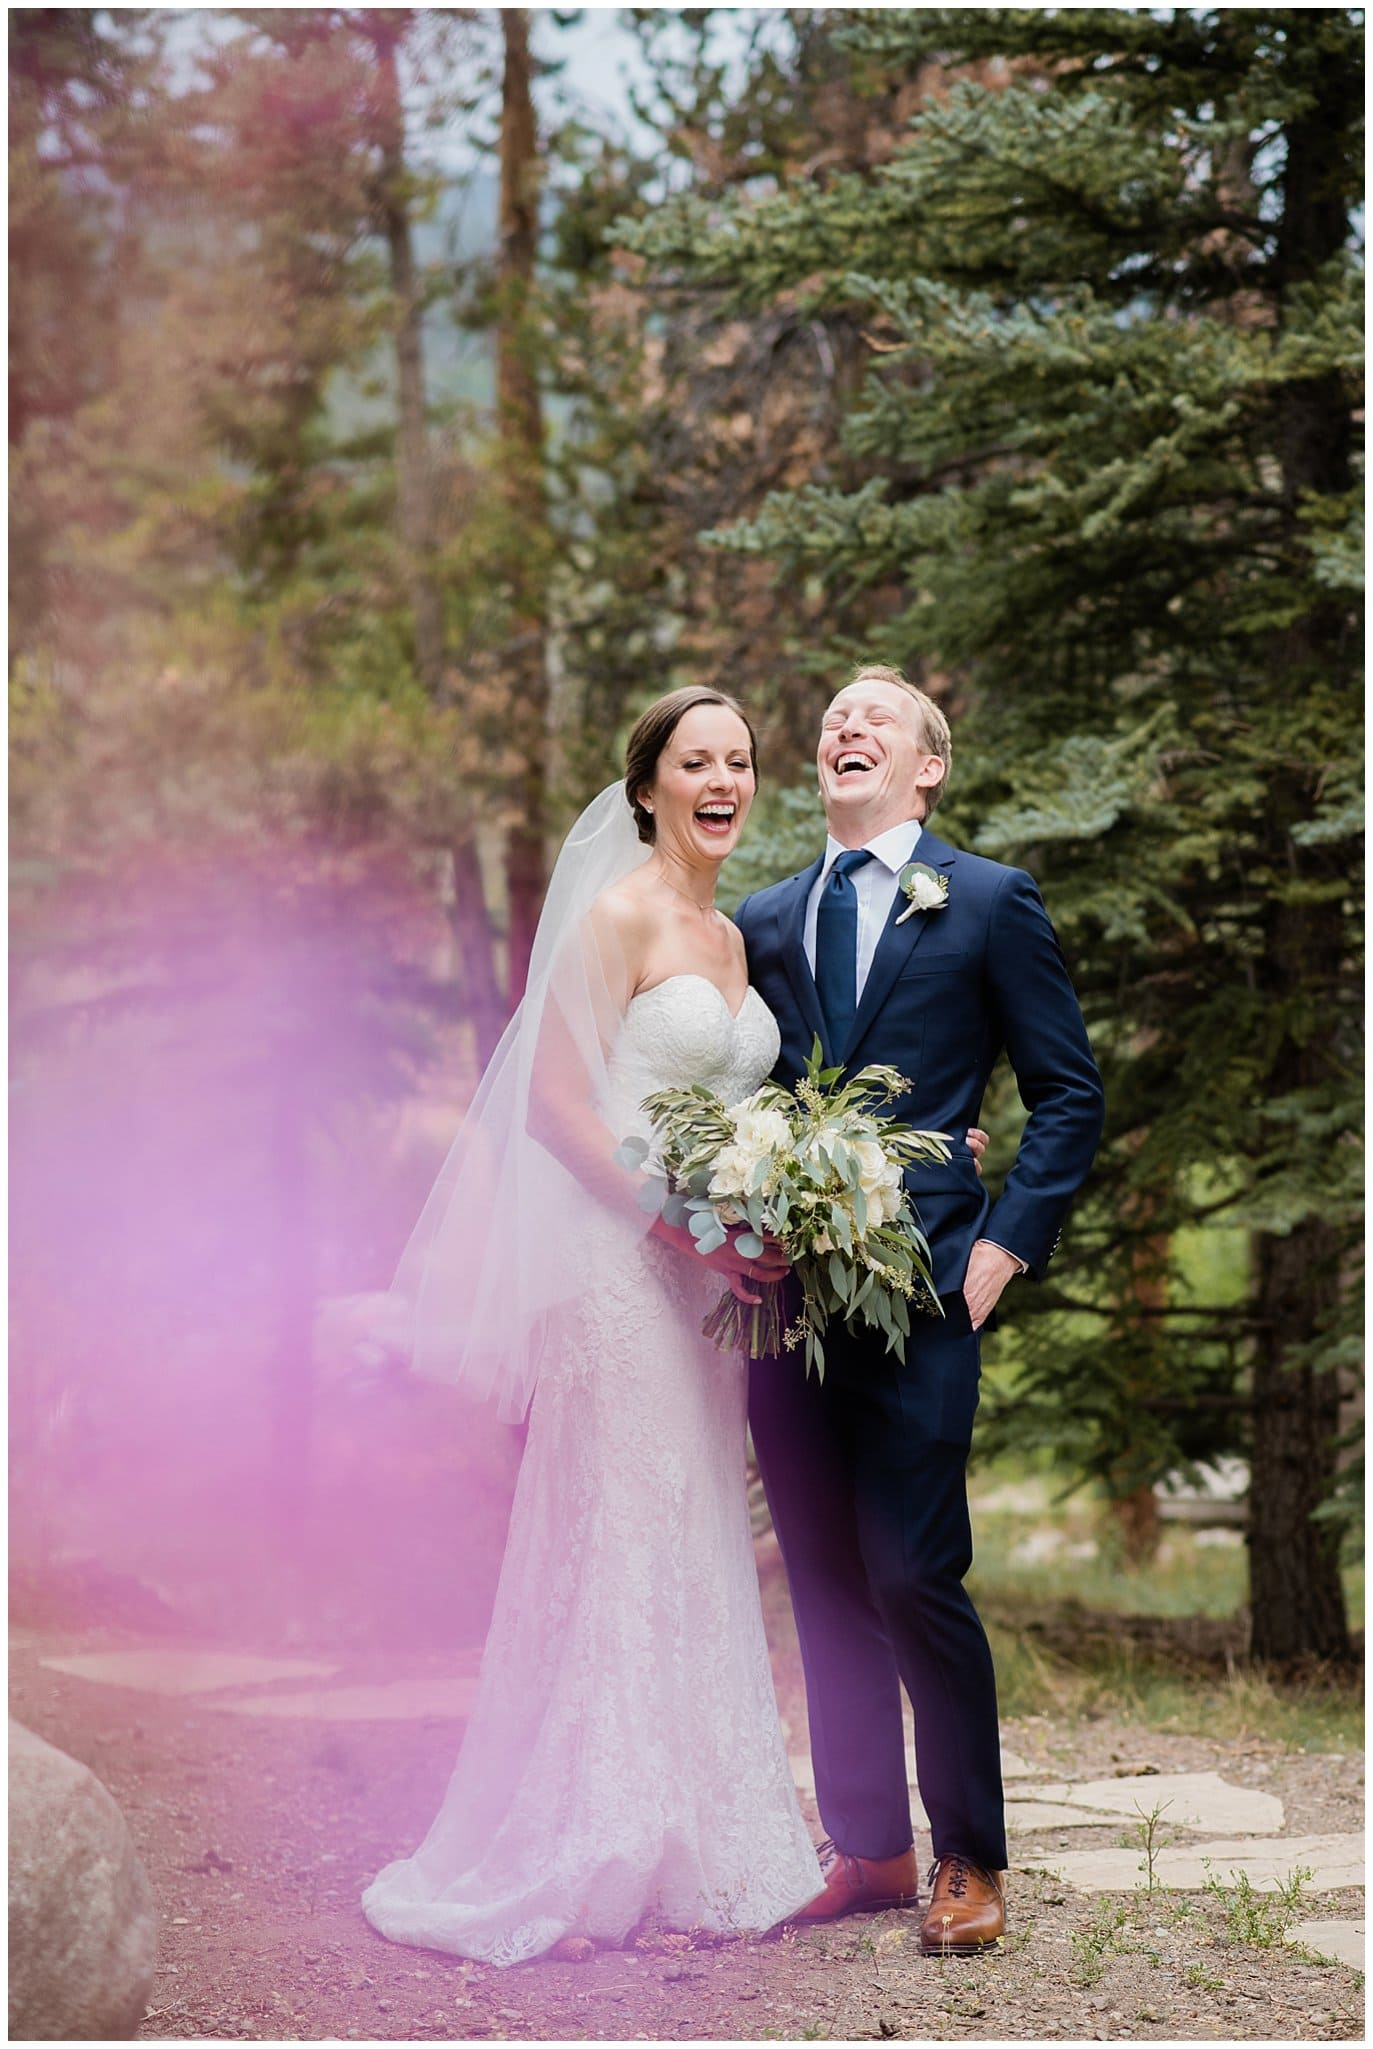 laughing bride and groom at Arapahoe Basin Black Mountain Lodge Wedding by Colorado Wedding Photographer Jennie Crate